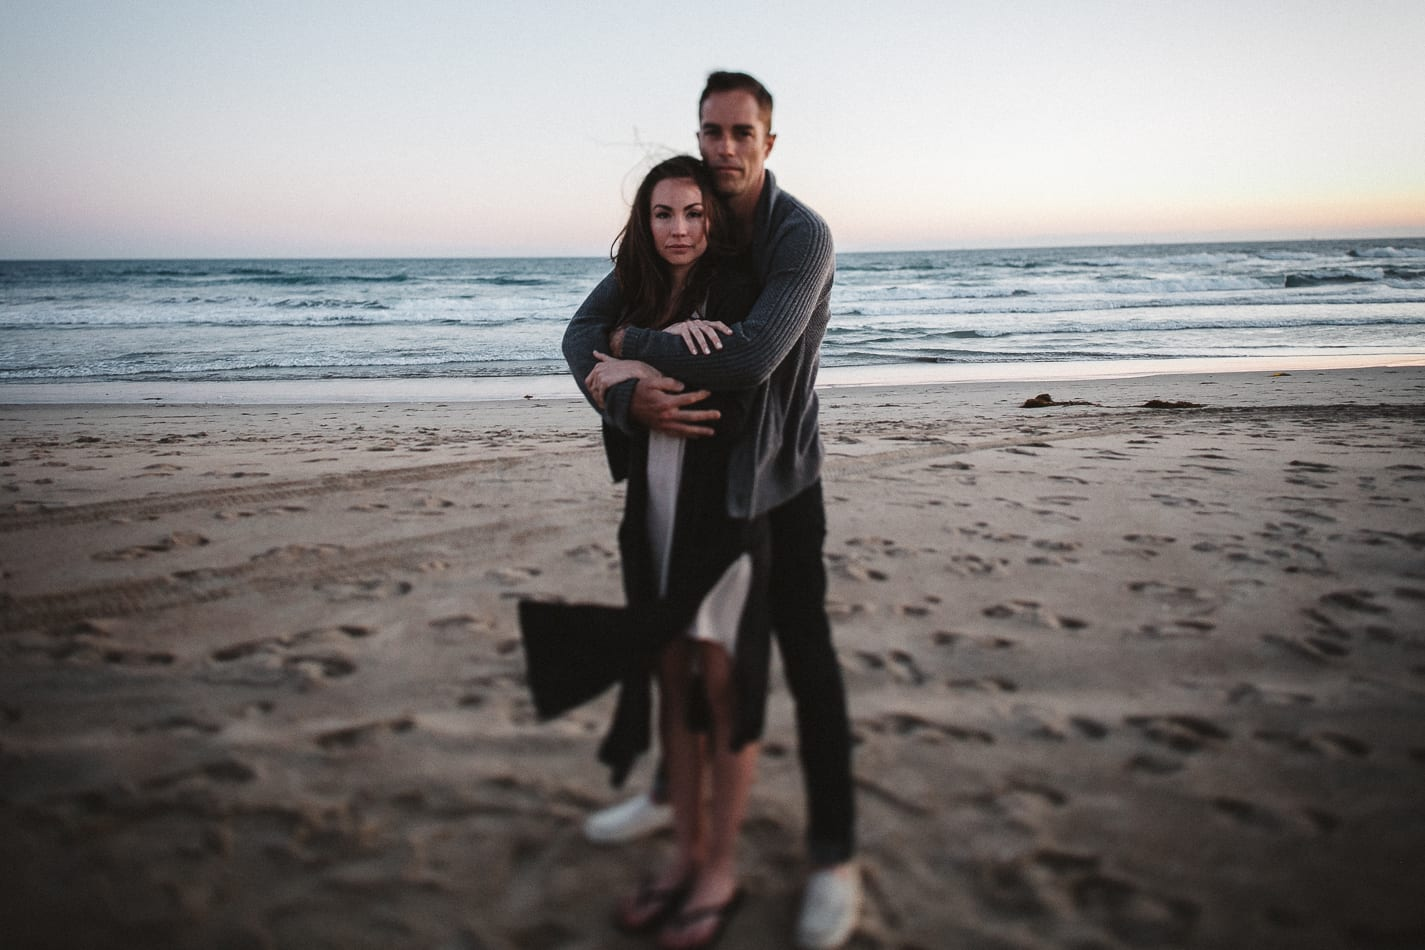 jason-alyssa-huntington-beach-california-engagement-photographer-36